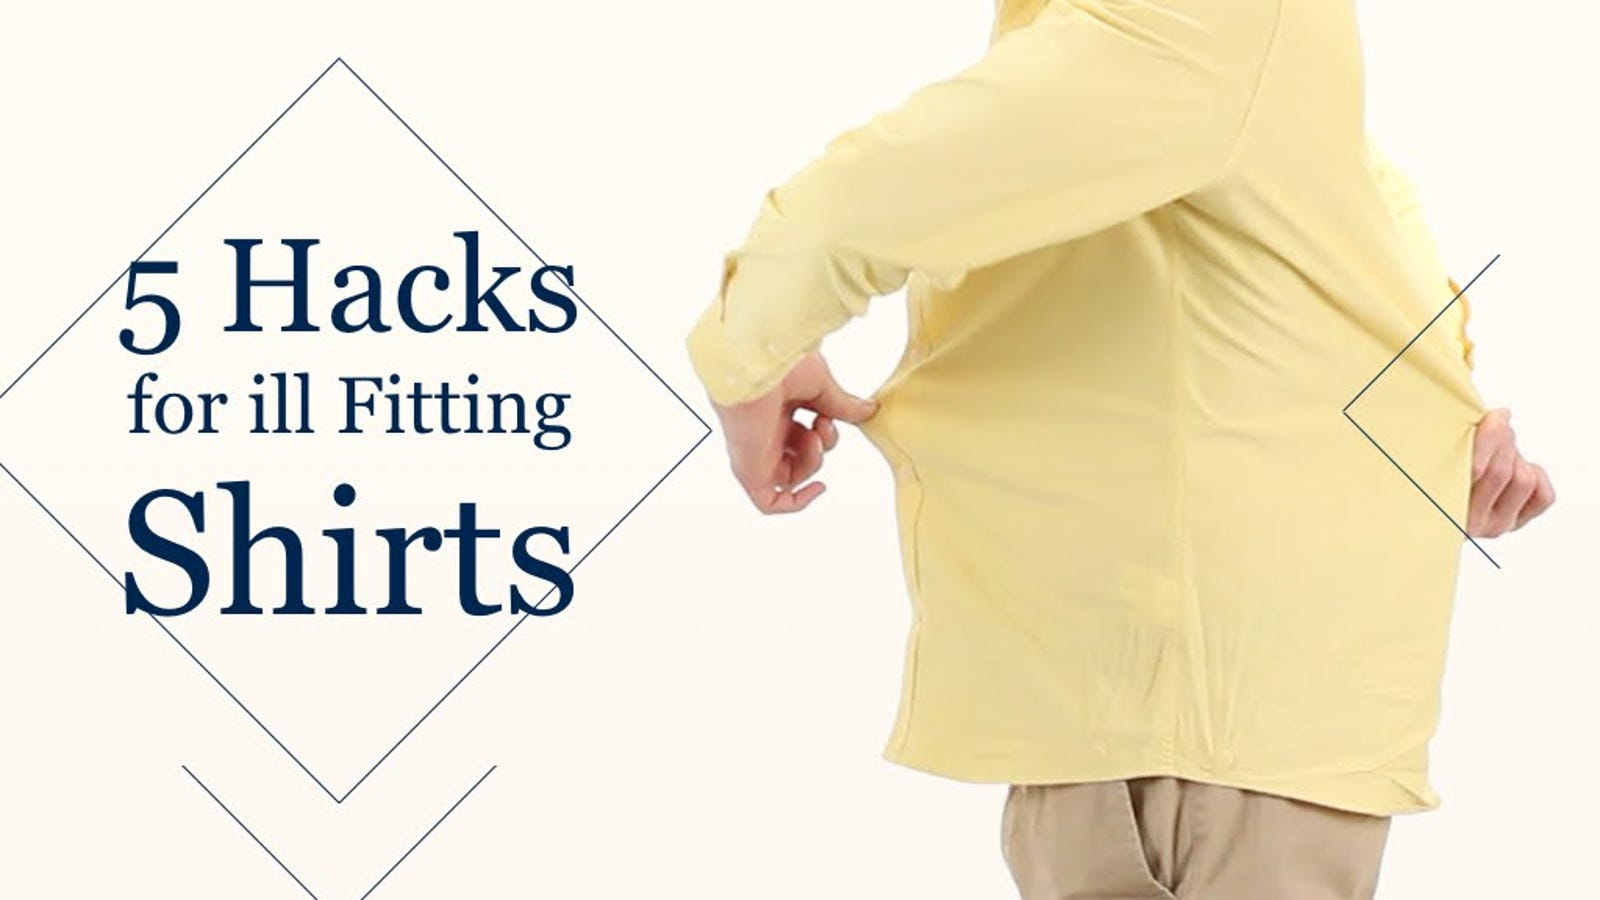 How to make a dress shirt fit tighter